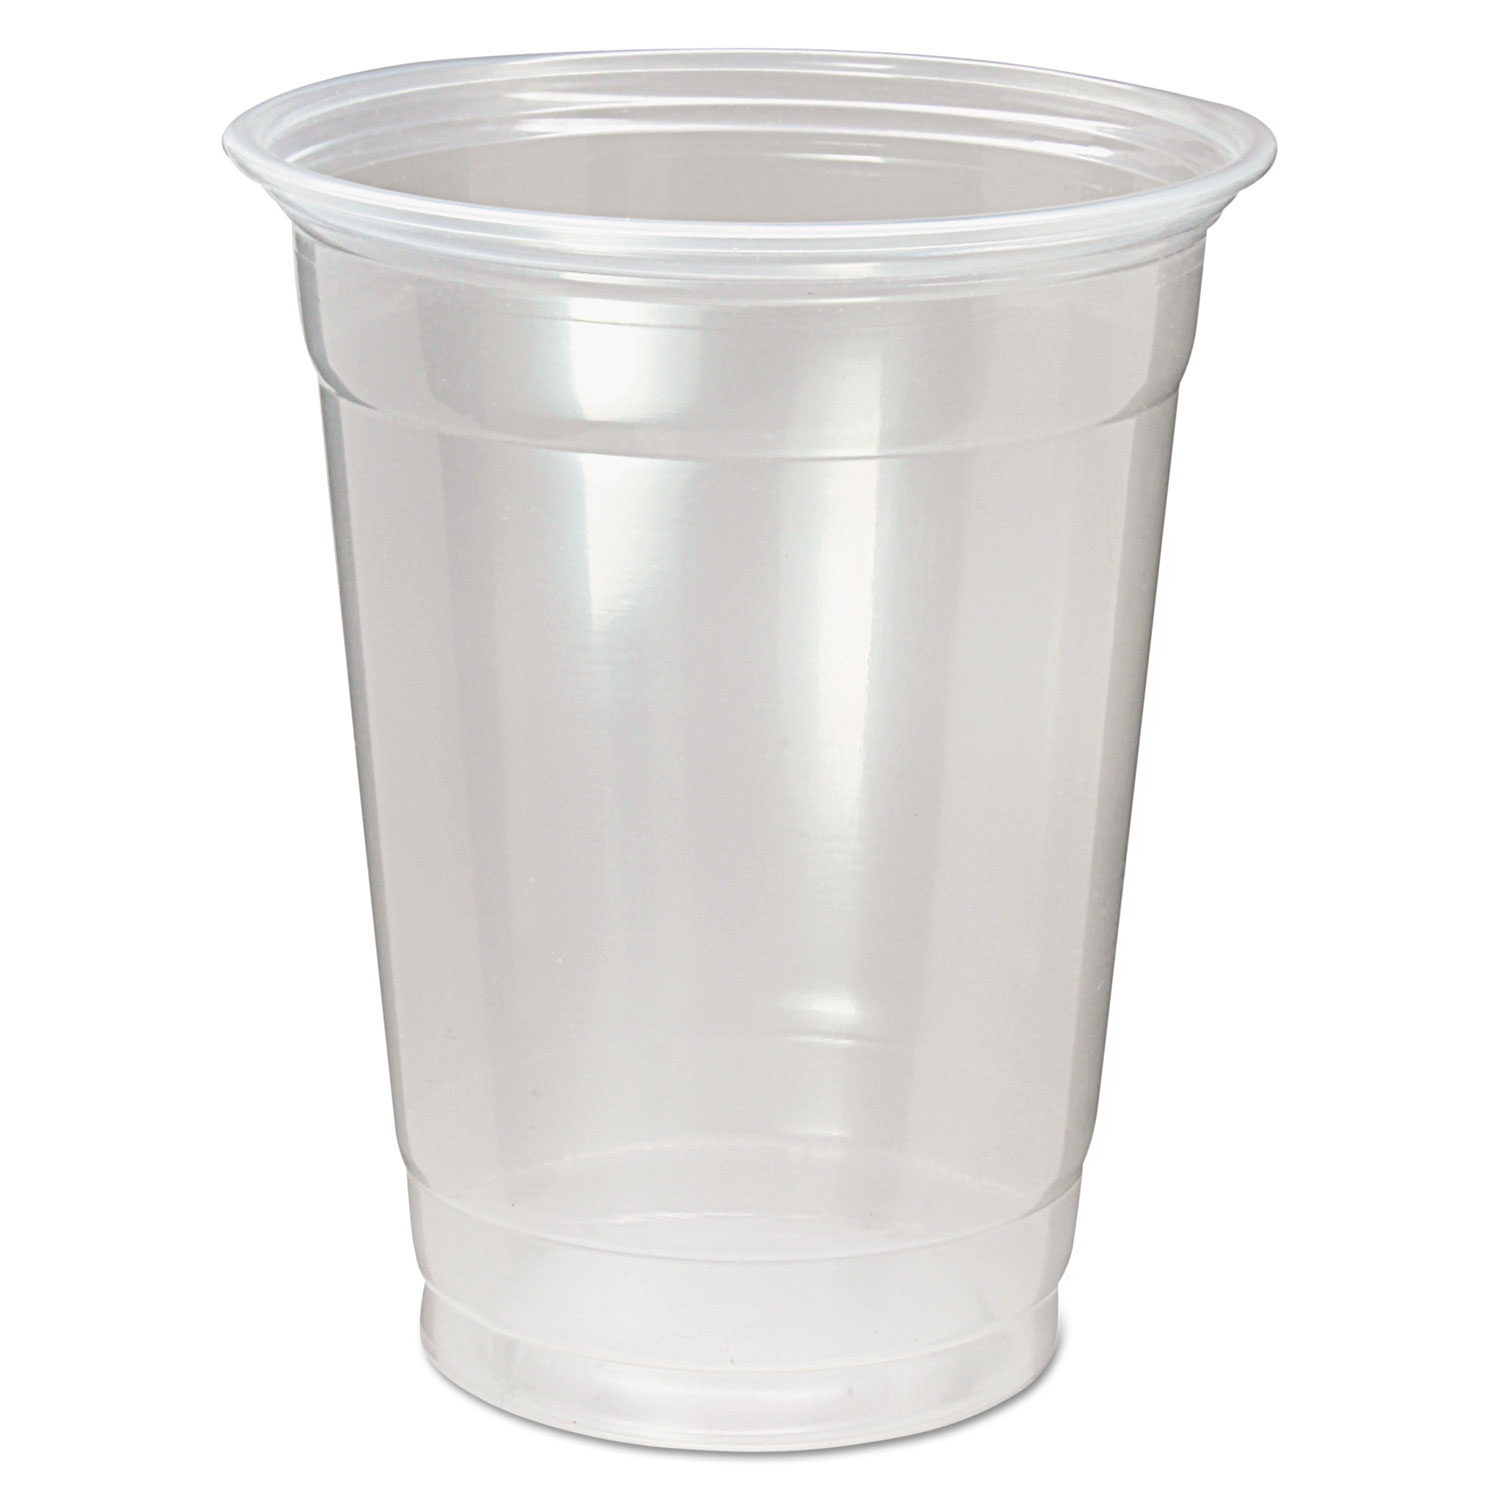 Nexclear Polypropylene Drink Cups, 16/18 Oz, Clear, 1000/Carton